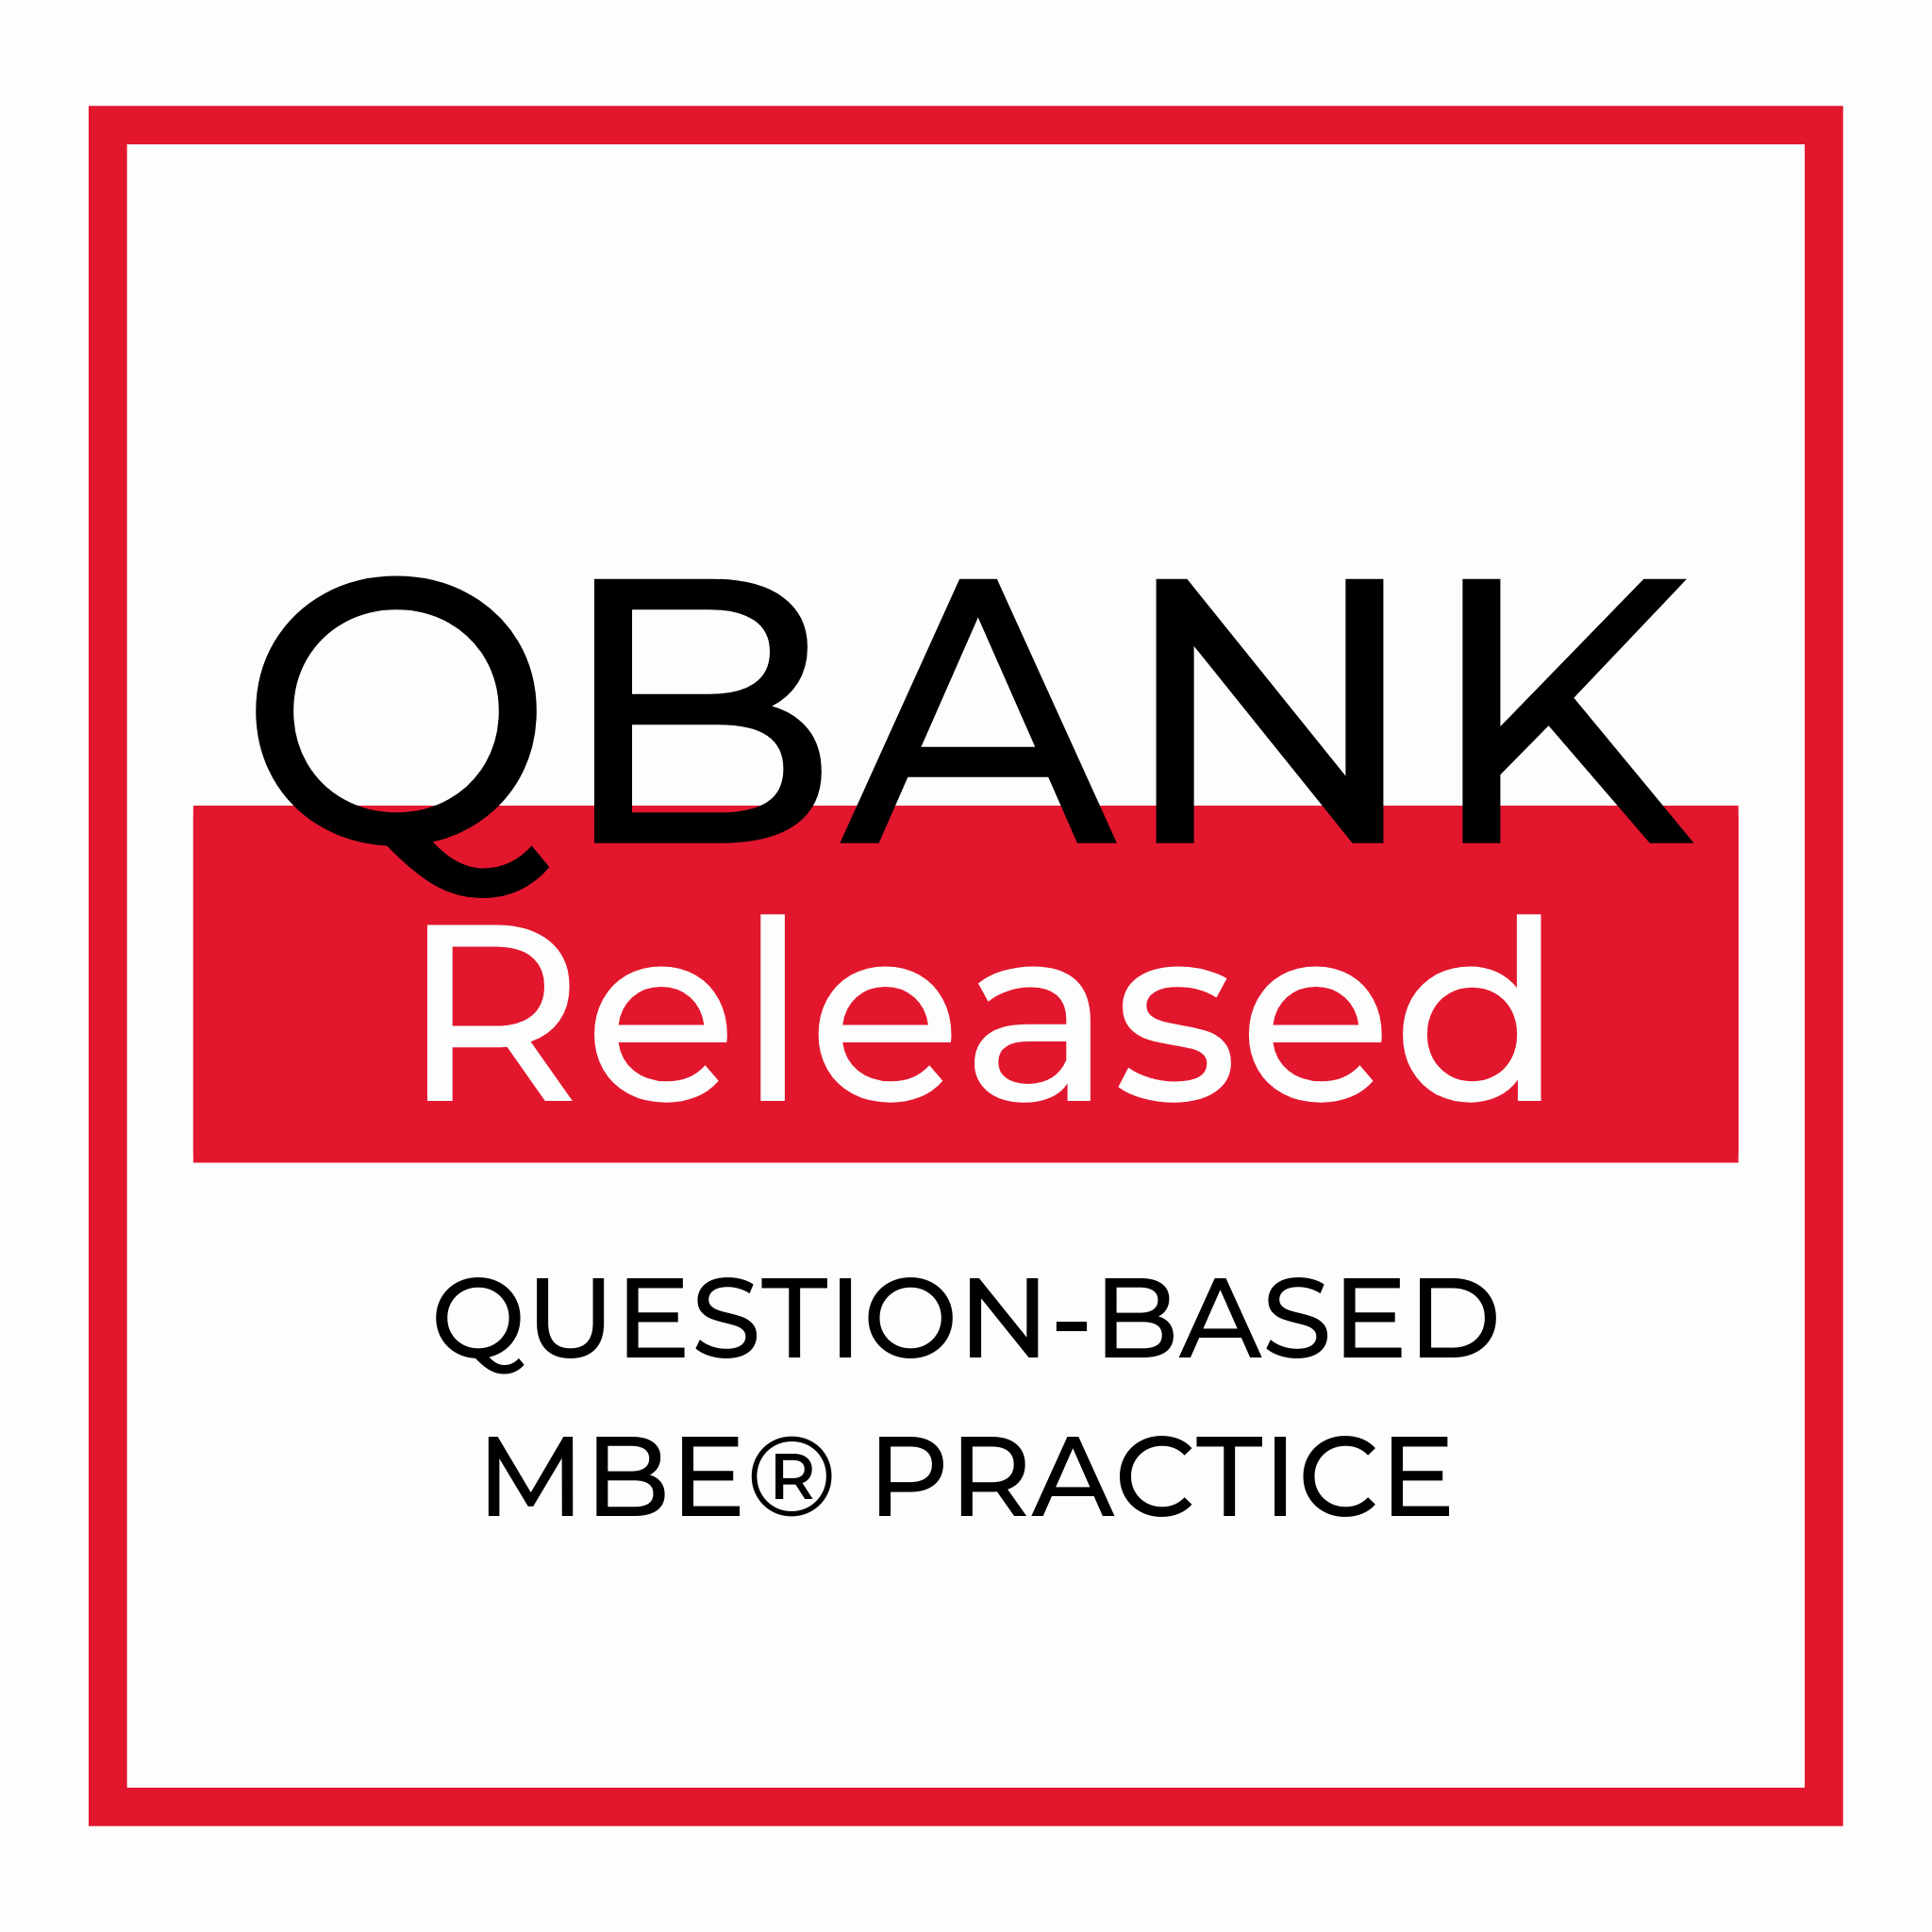 Qbank Released